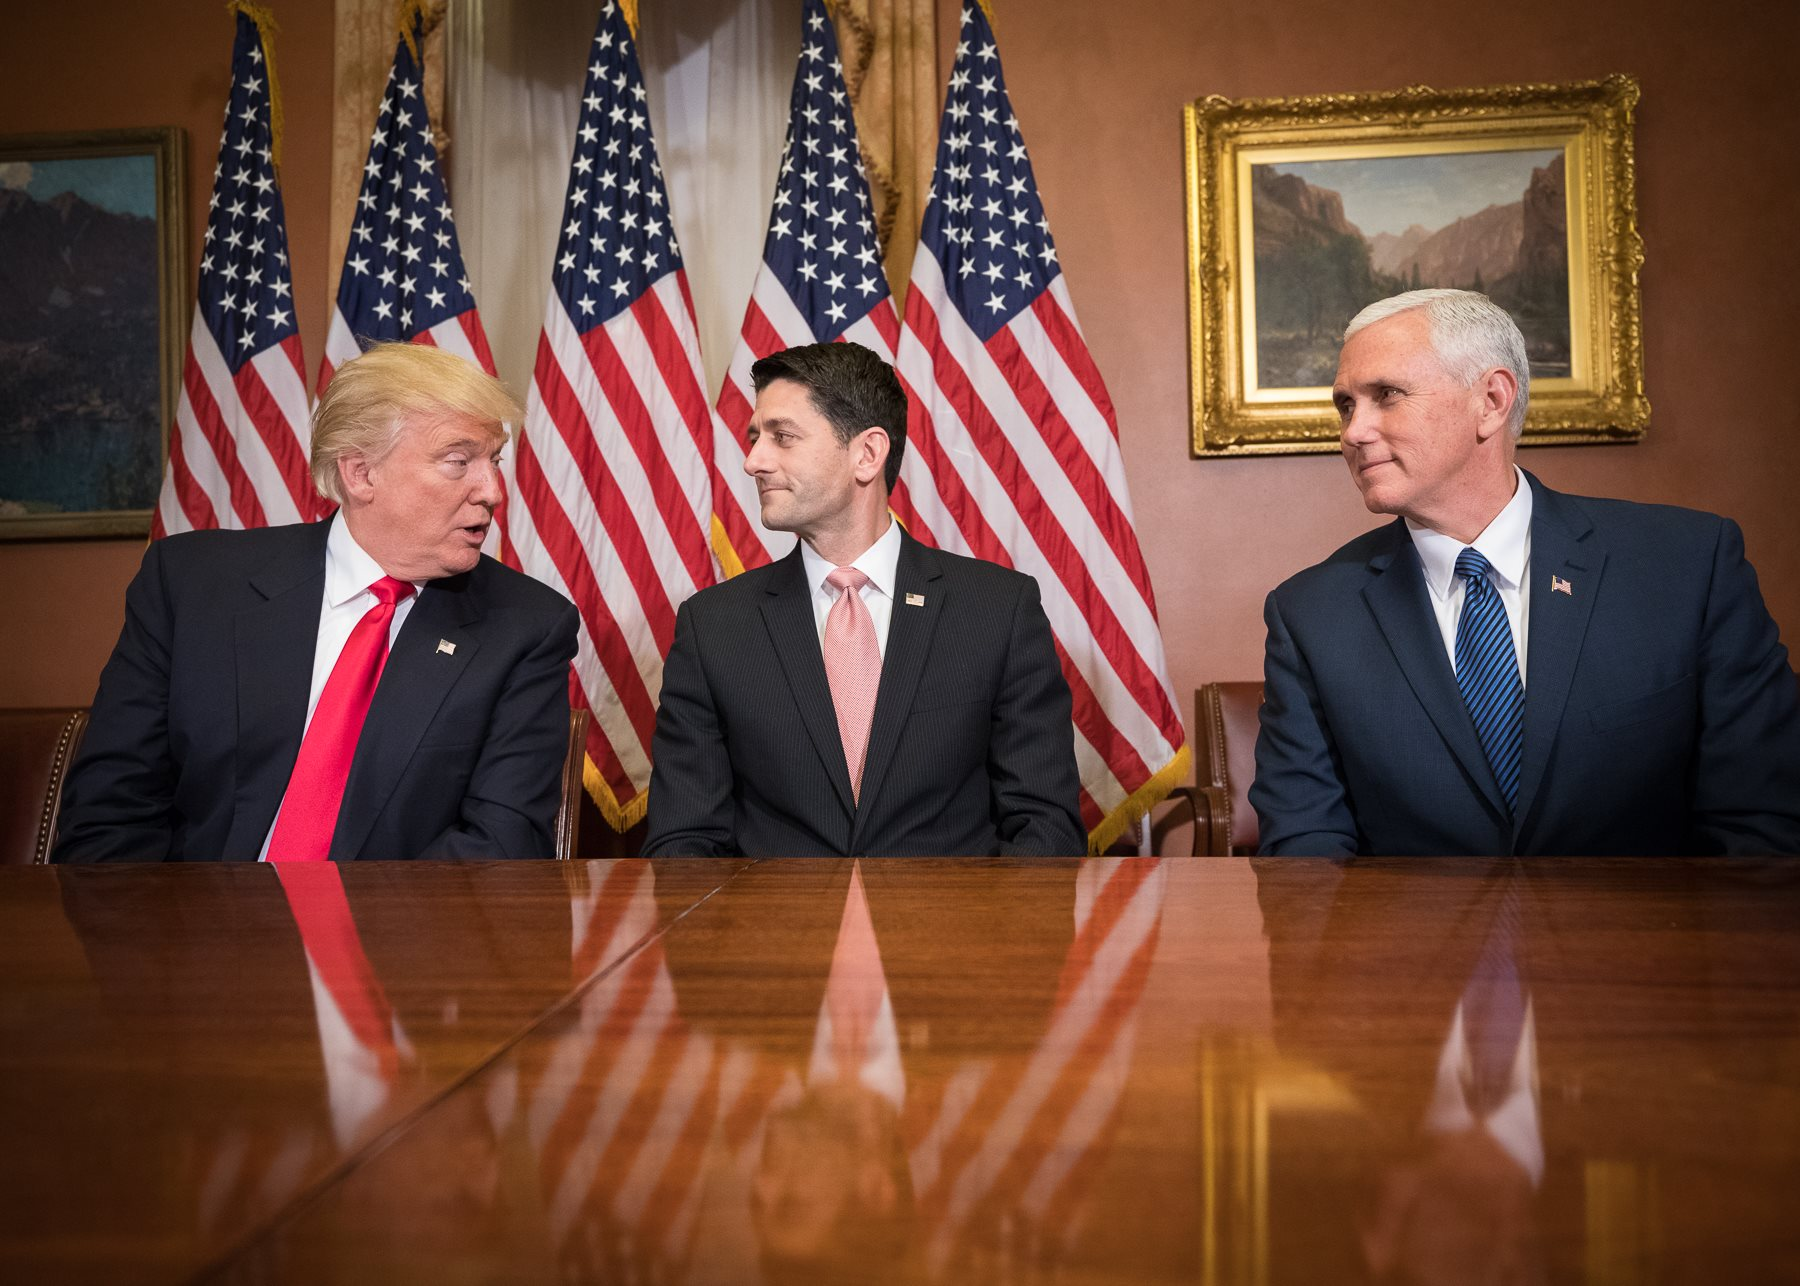 Ryan with Pence and Trump